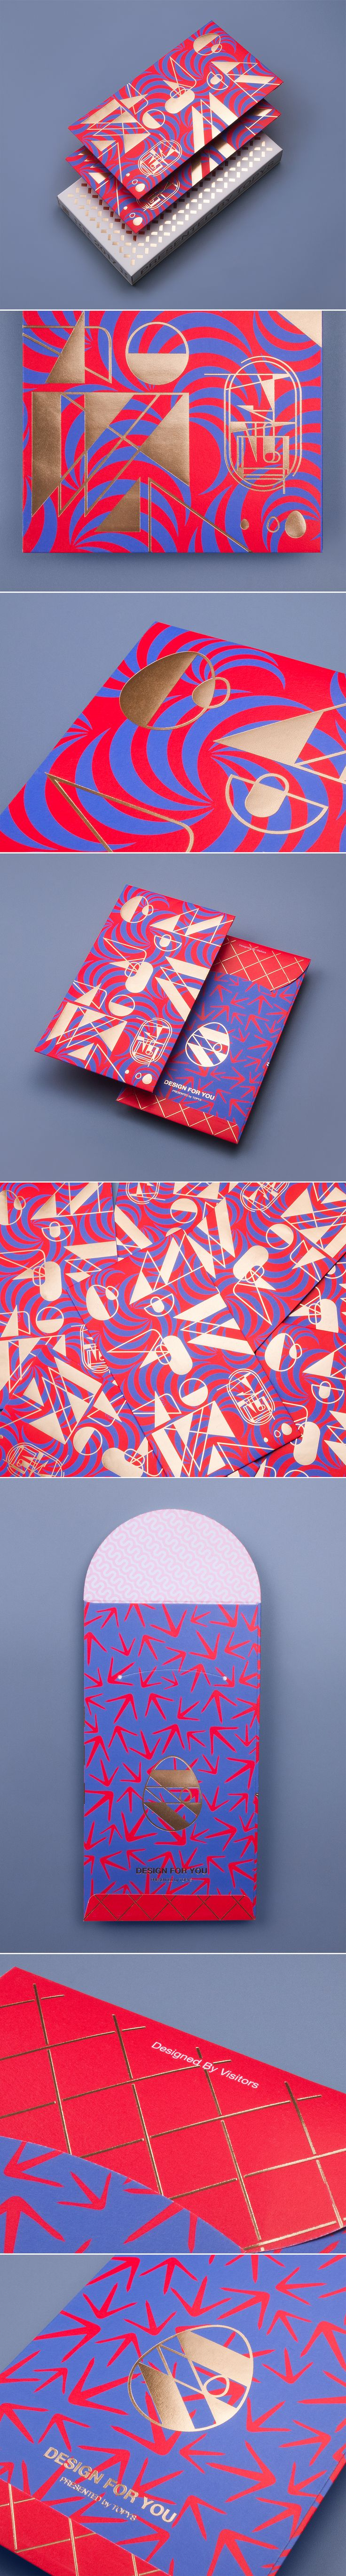 Rooster Red Packet Design on Behance